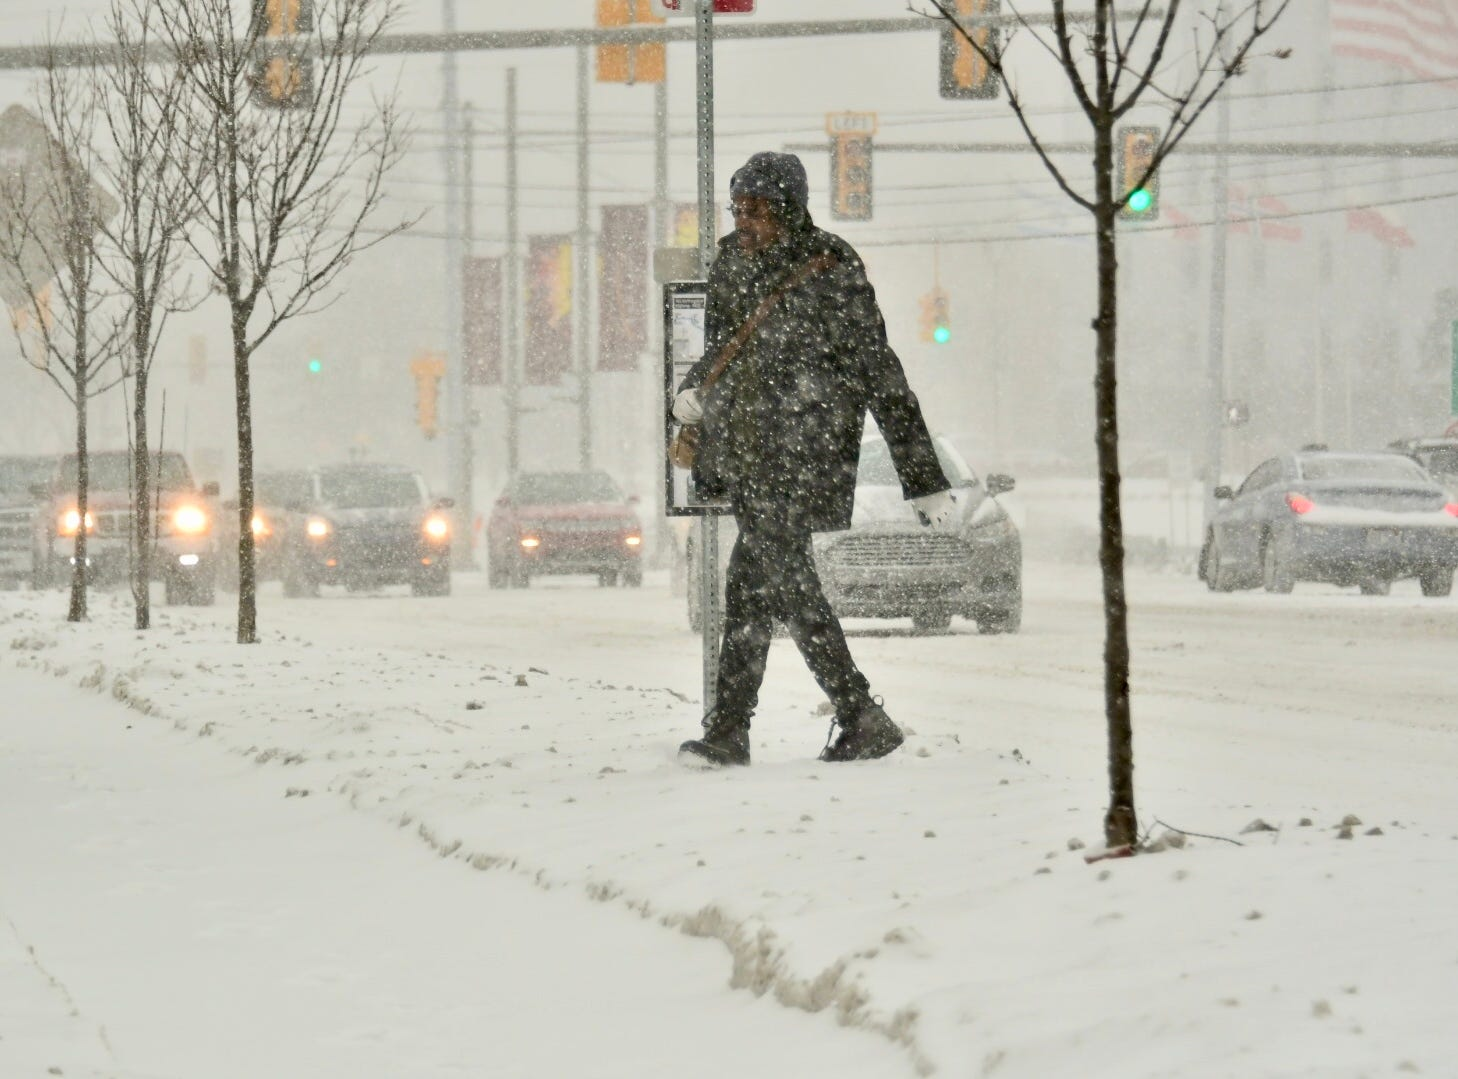 Pedestrians and vehicles make their way through the snow on Evergreen in Southfield, Monday afternoon,